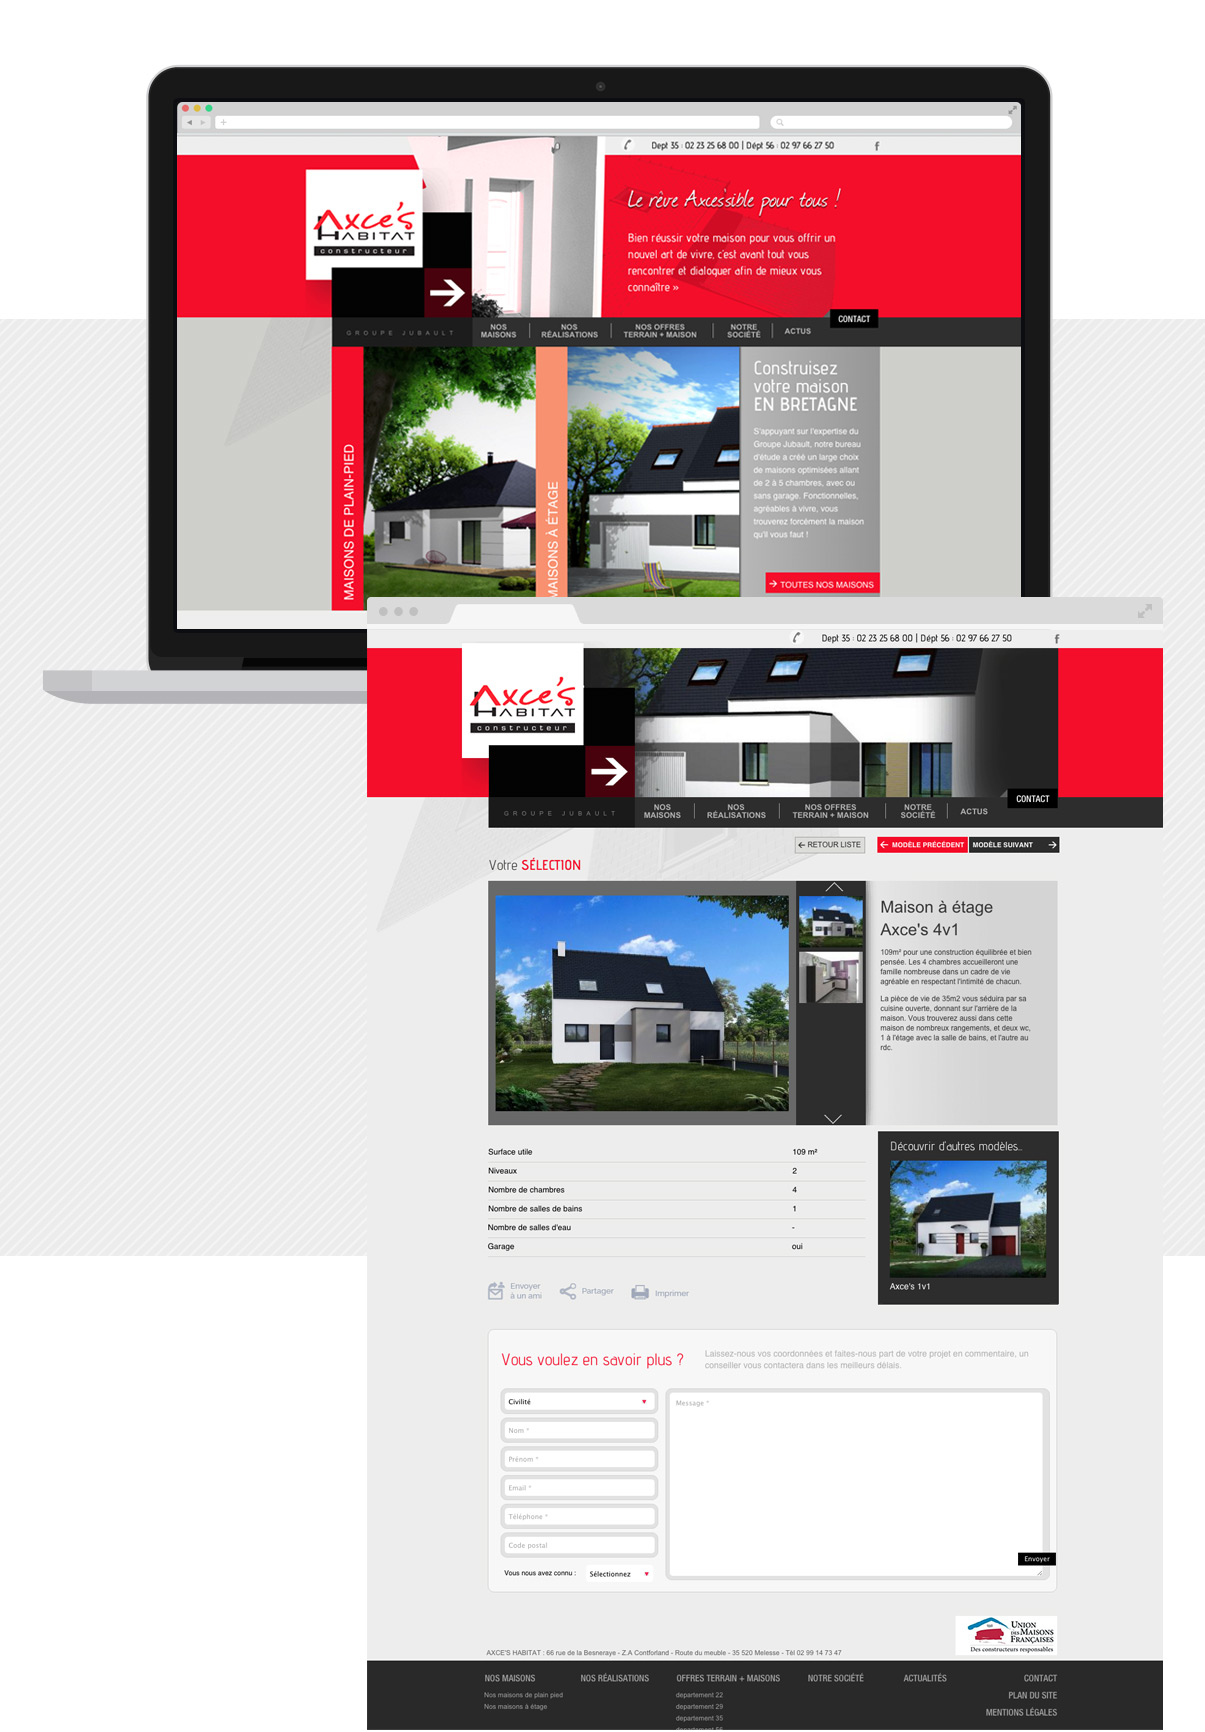 Axce's Habitat - Site internet - Drupal - Direction de création - Web design